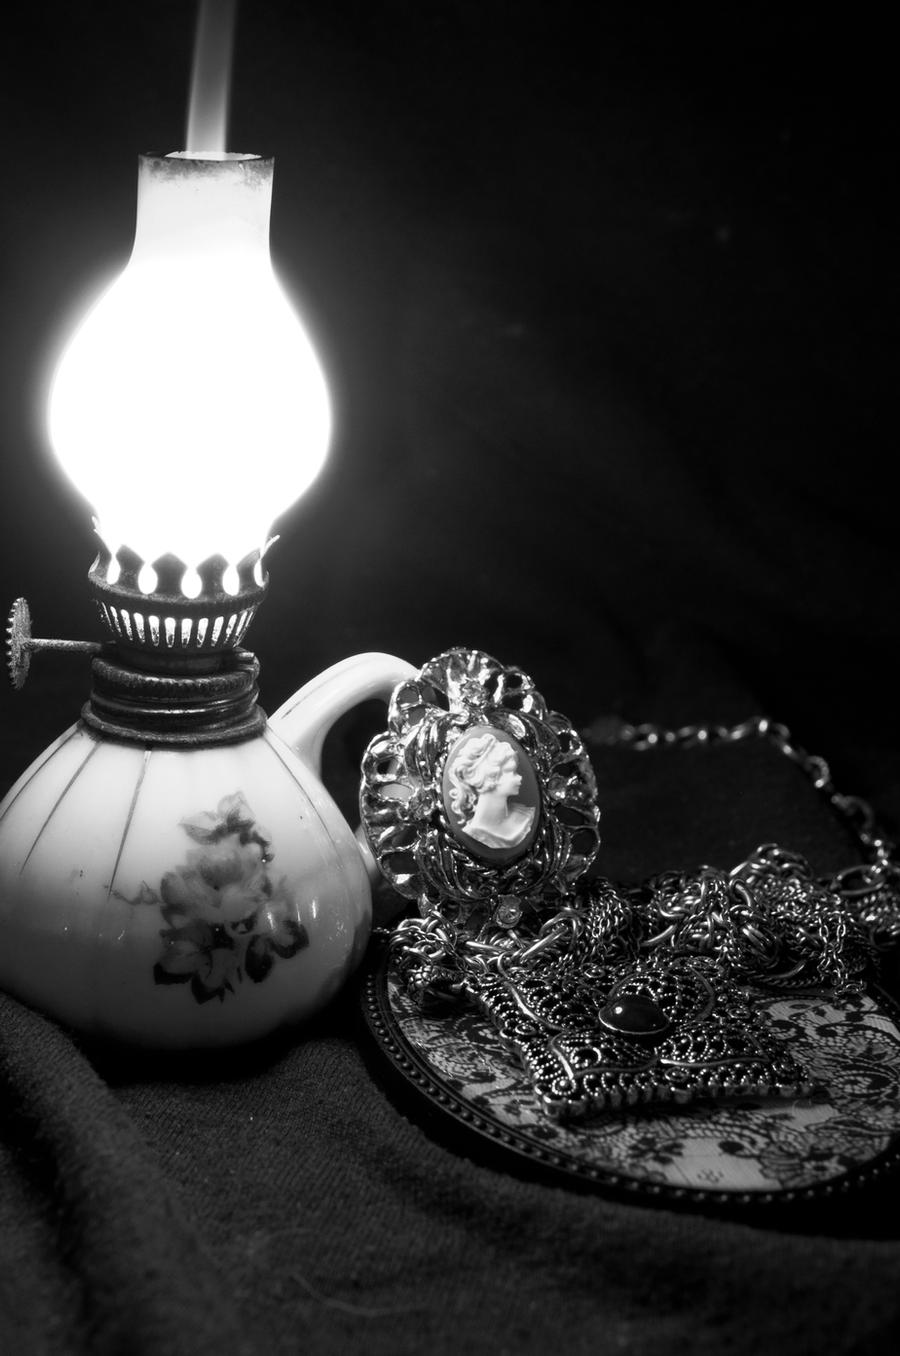 Lamp and Cameo by phoenixfire530